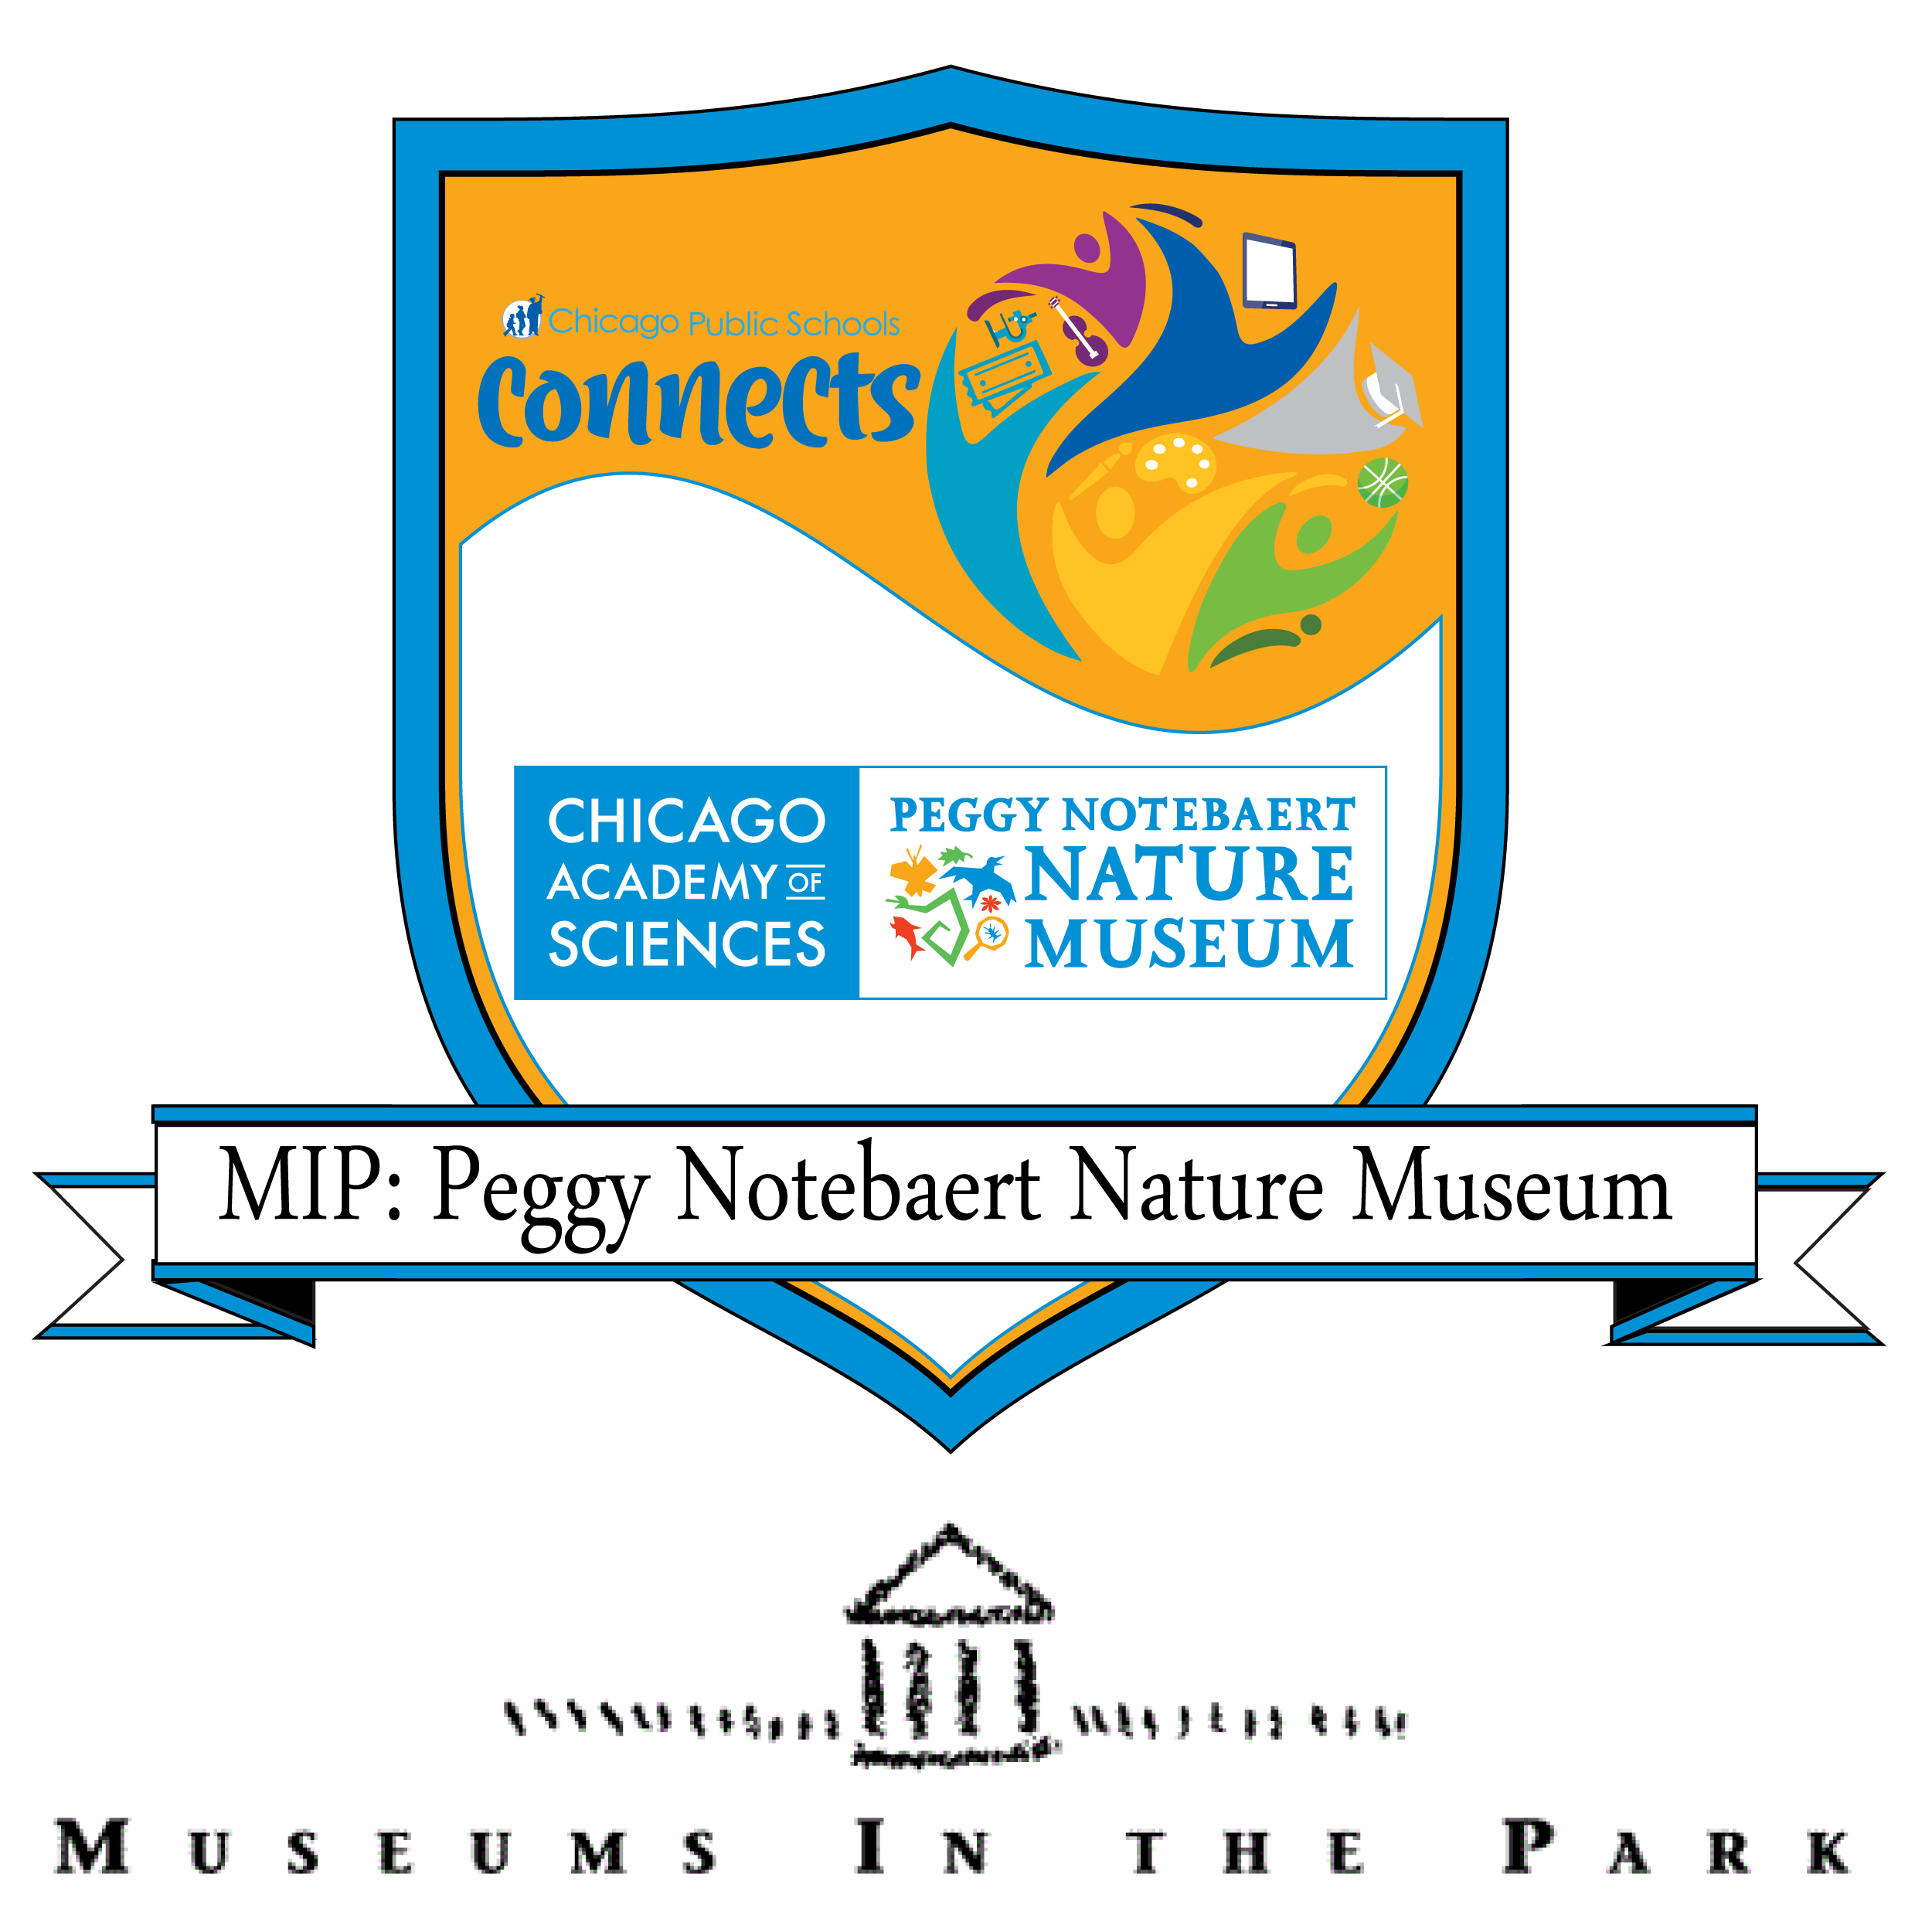 Museums in the Park: Peggy Notebaert Nature Museum